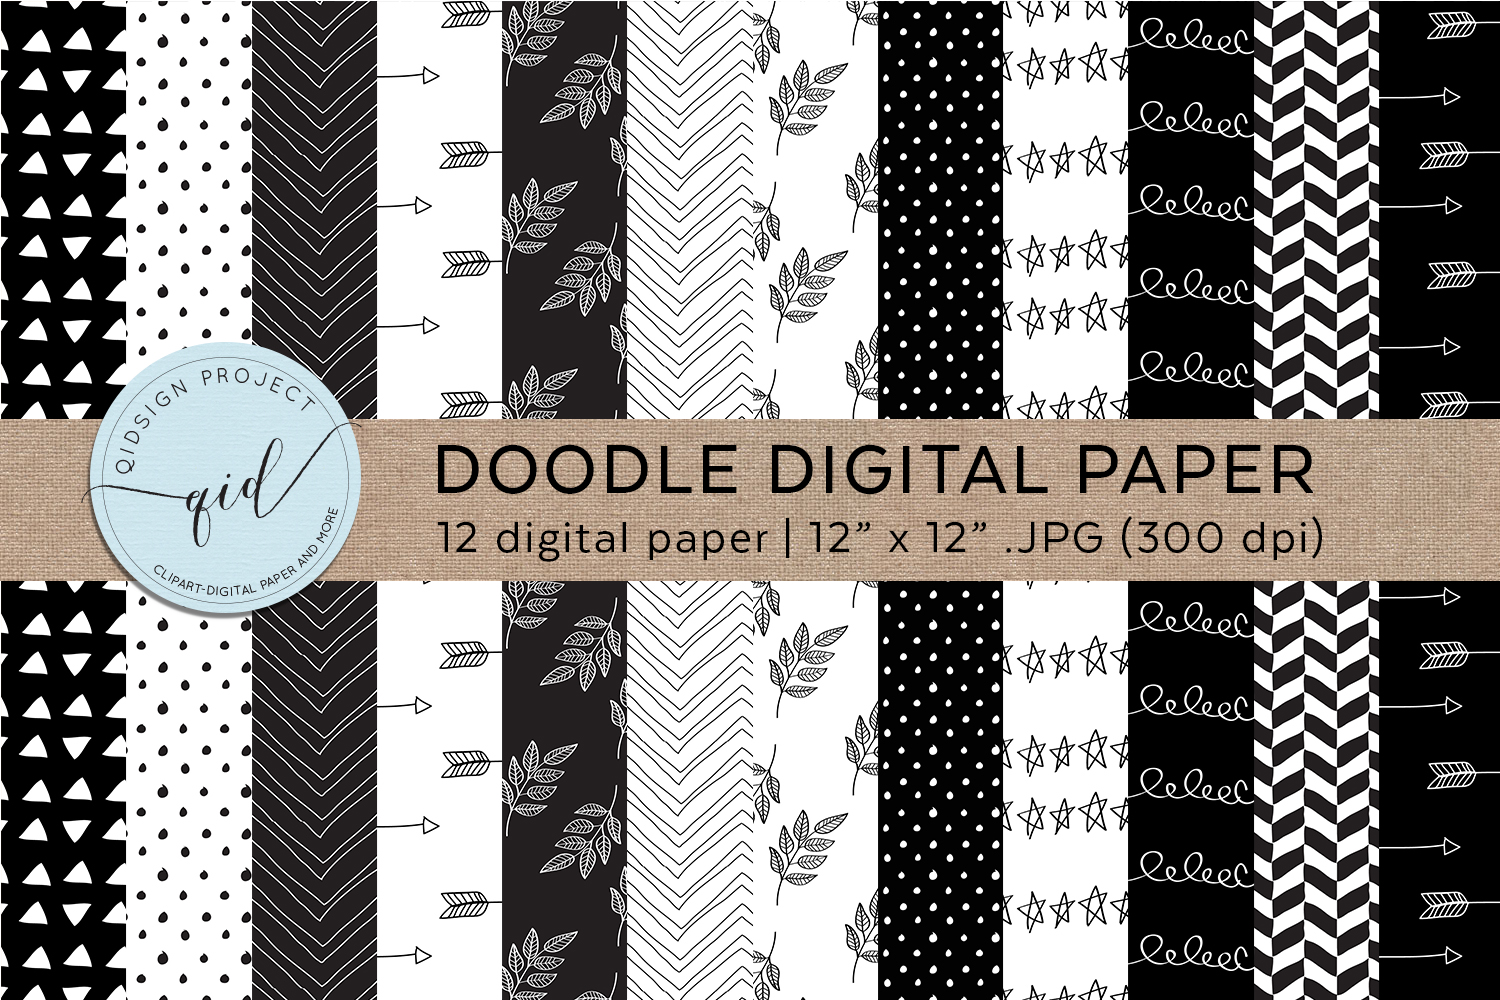 Doodle Digital Paper Black And White example image 1